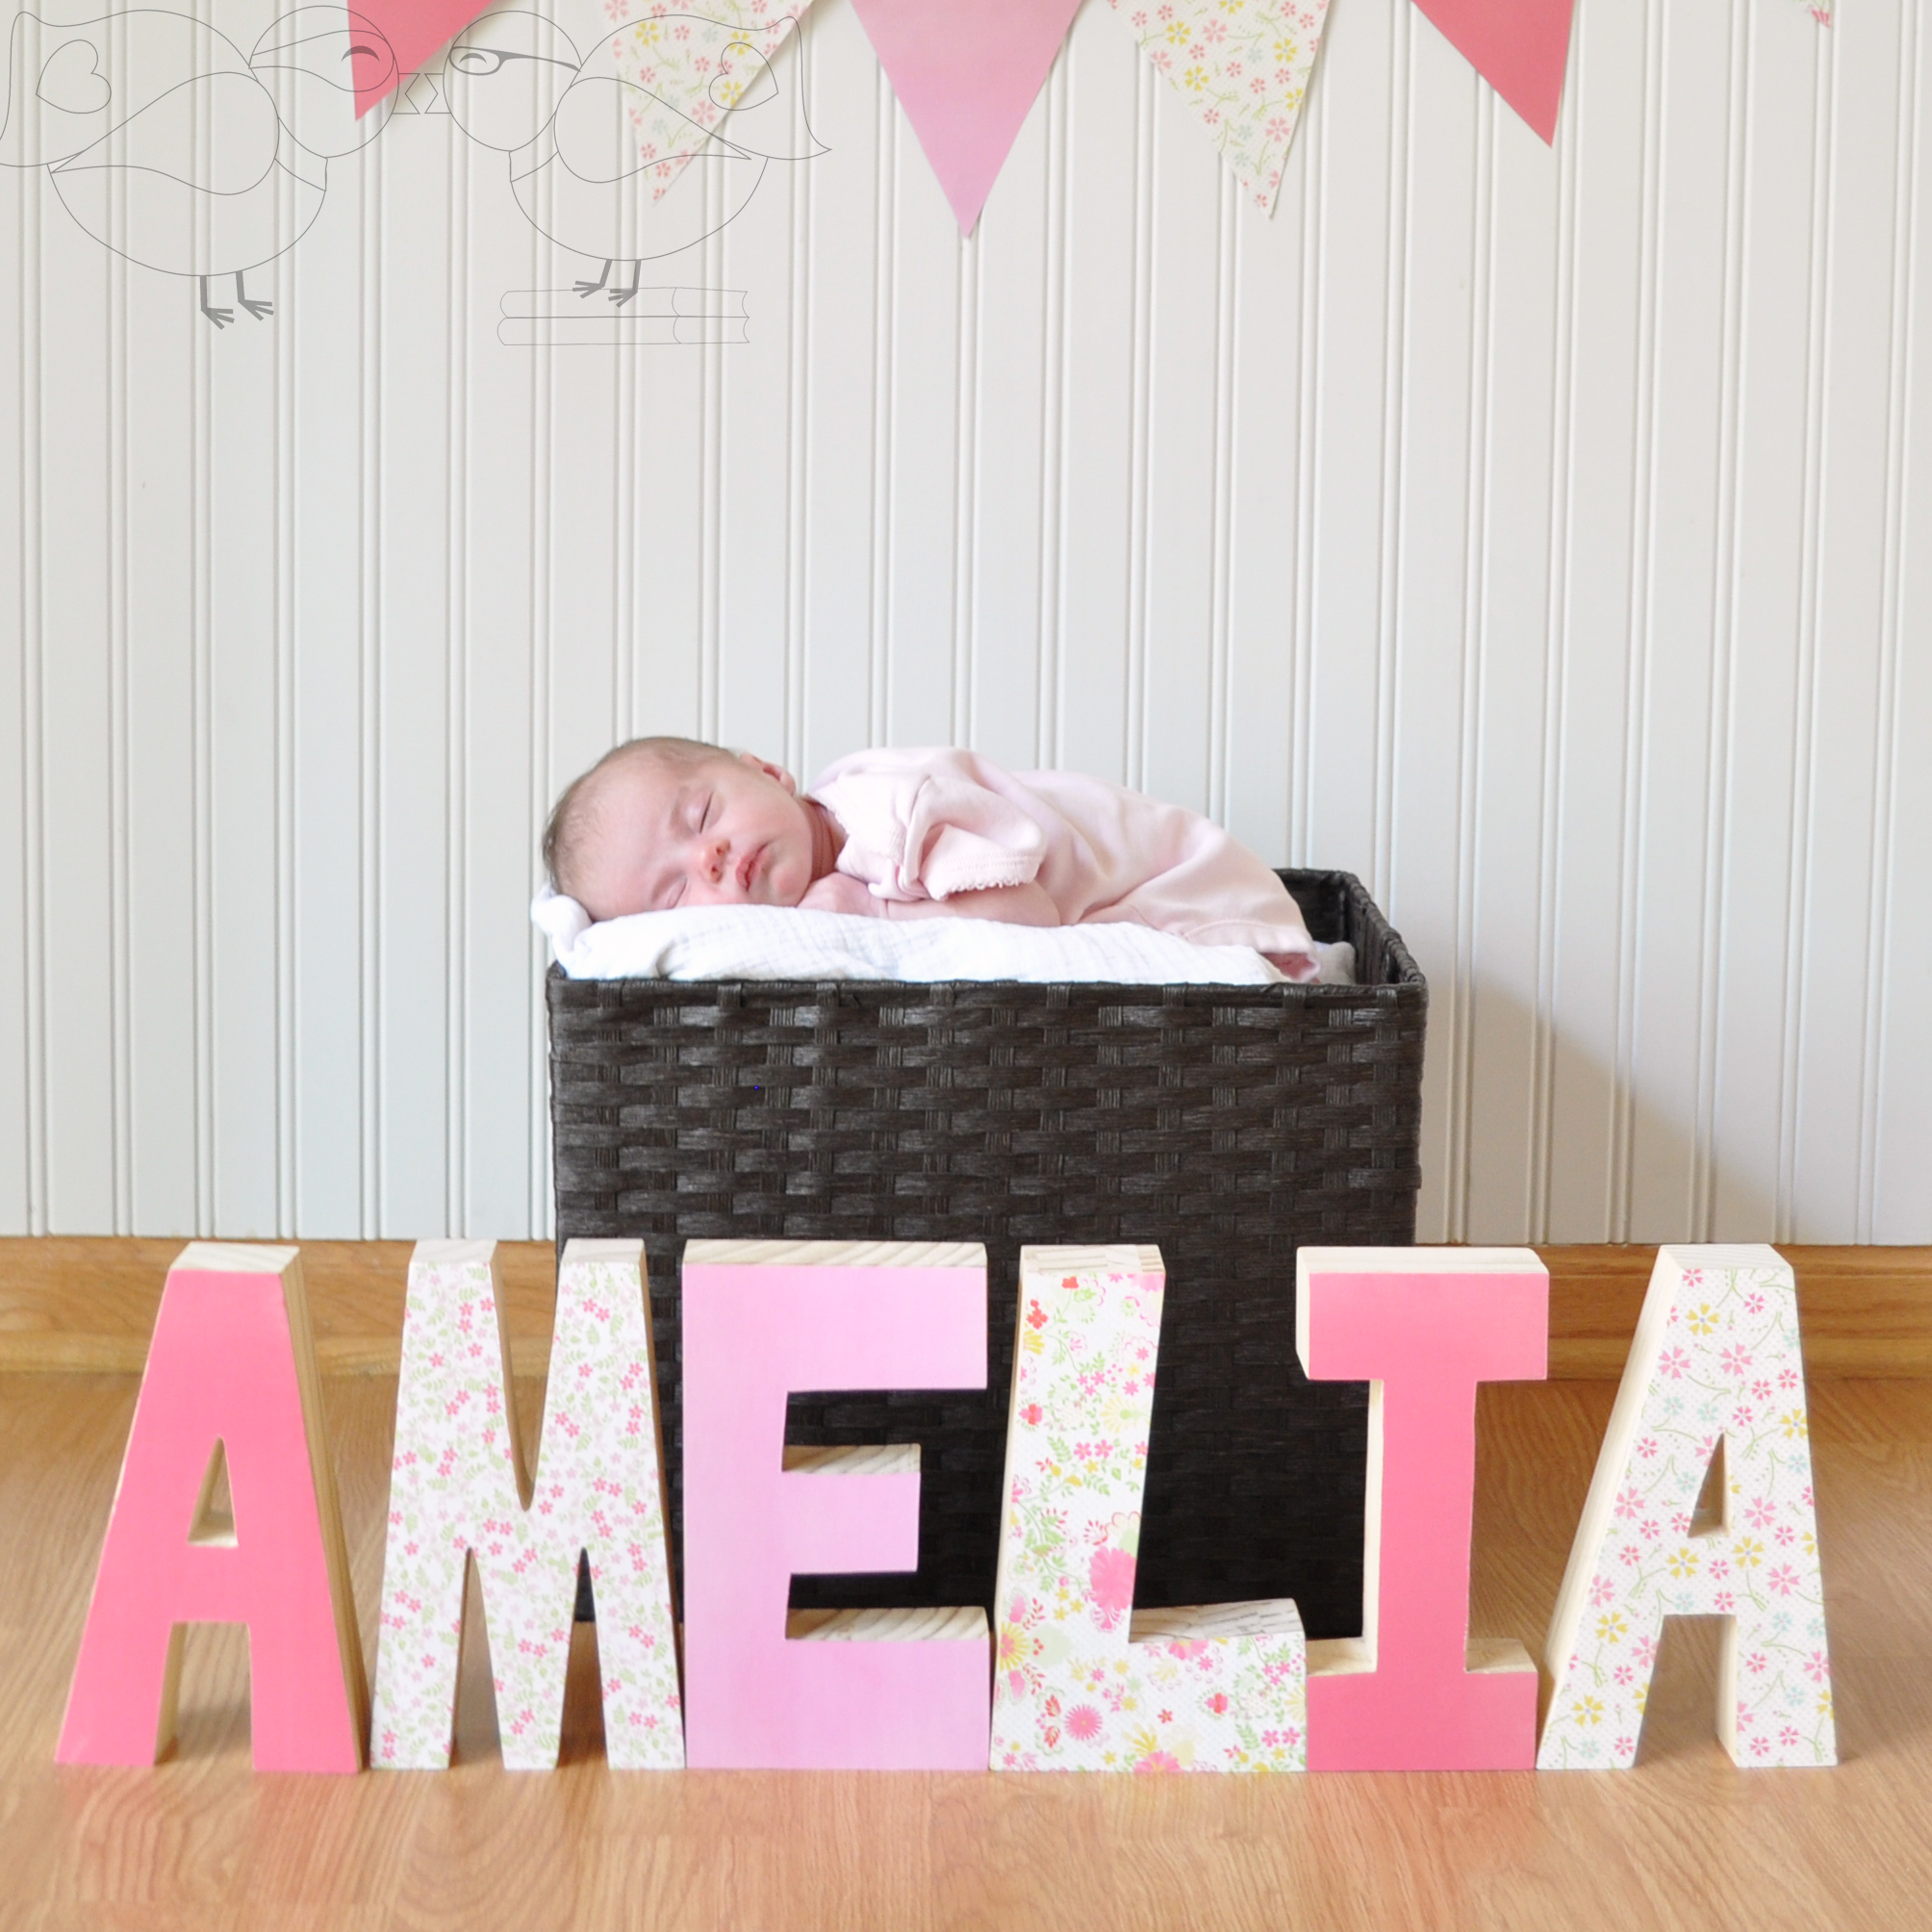 decorative wooden letters perfect gift for new baby the